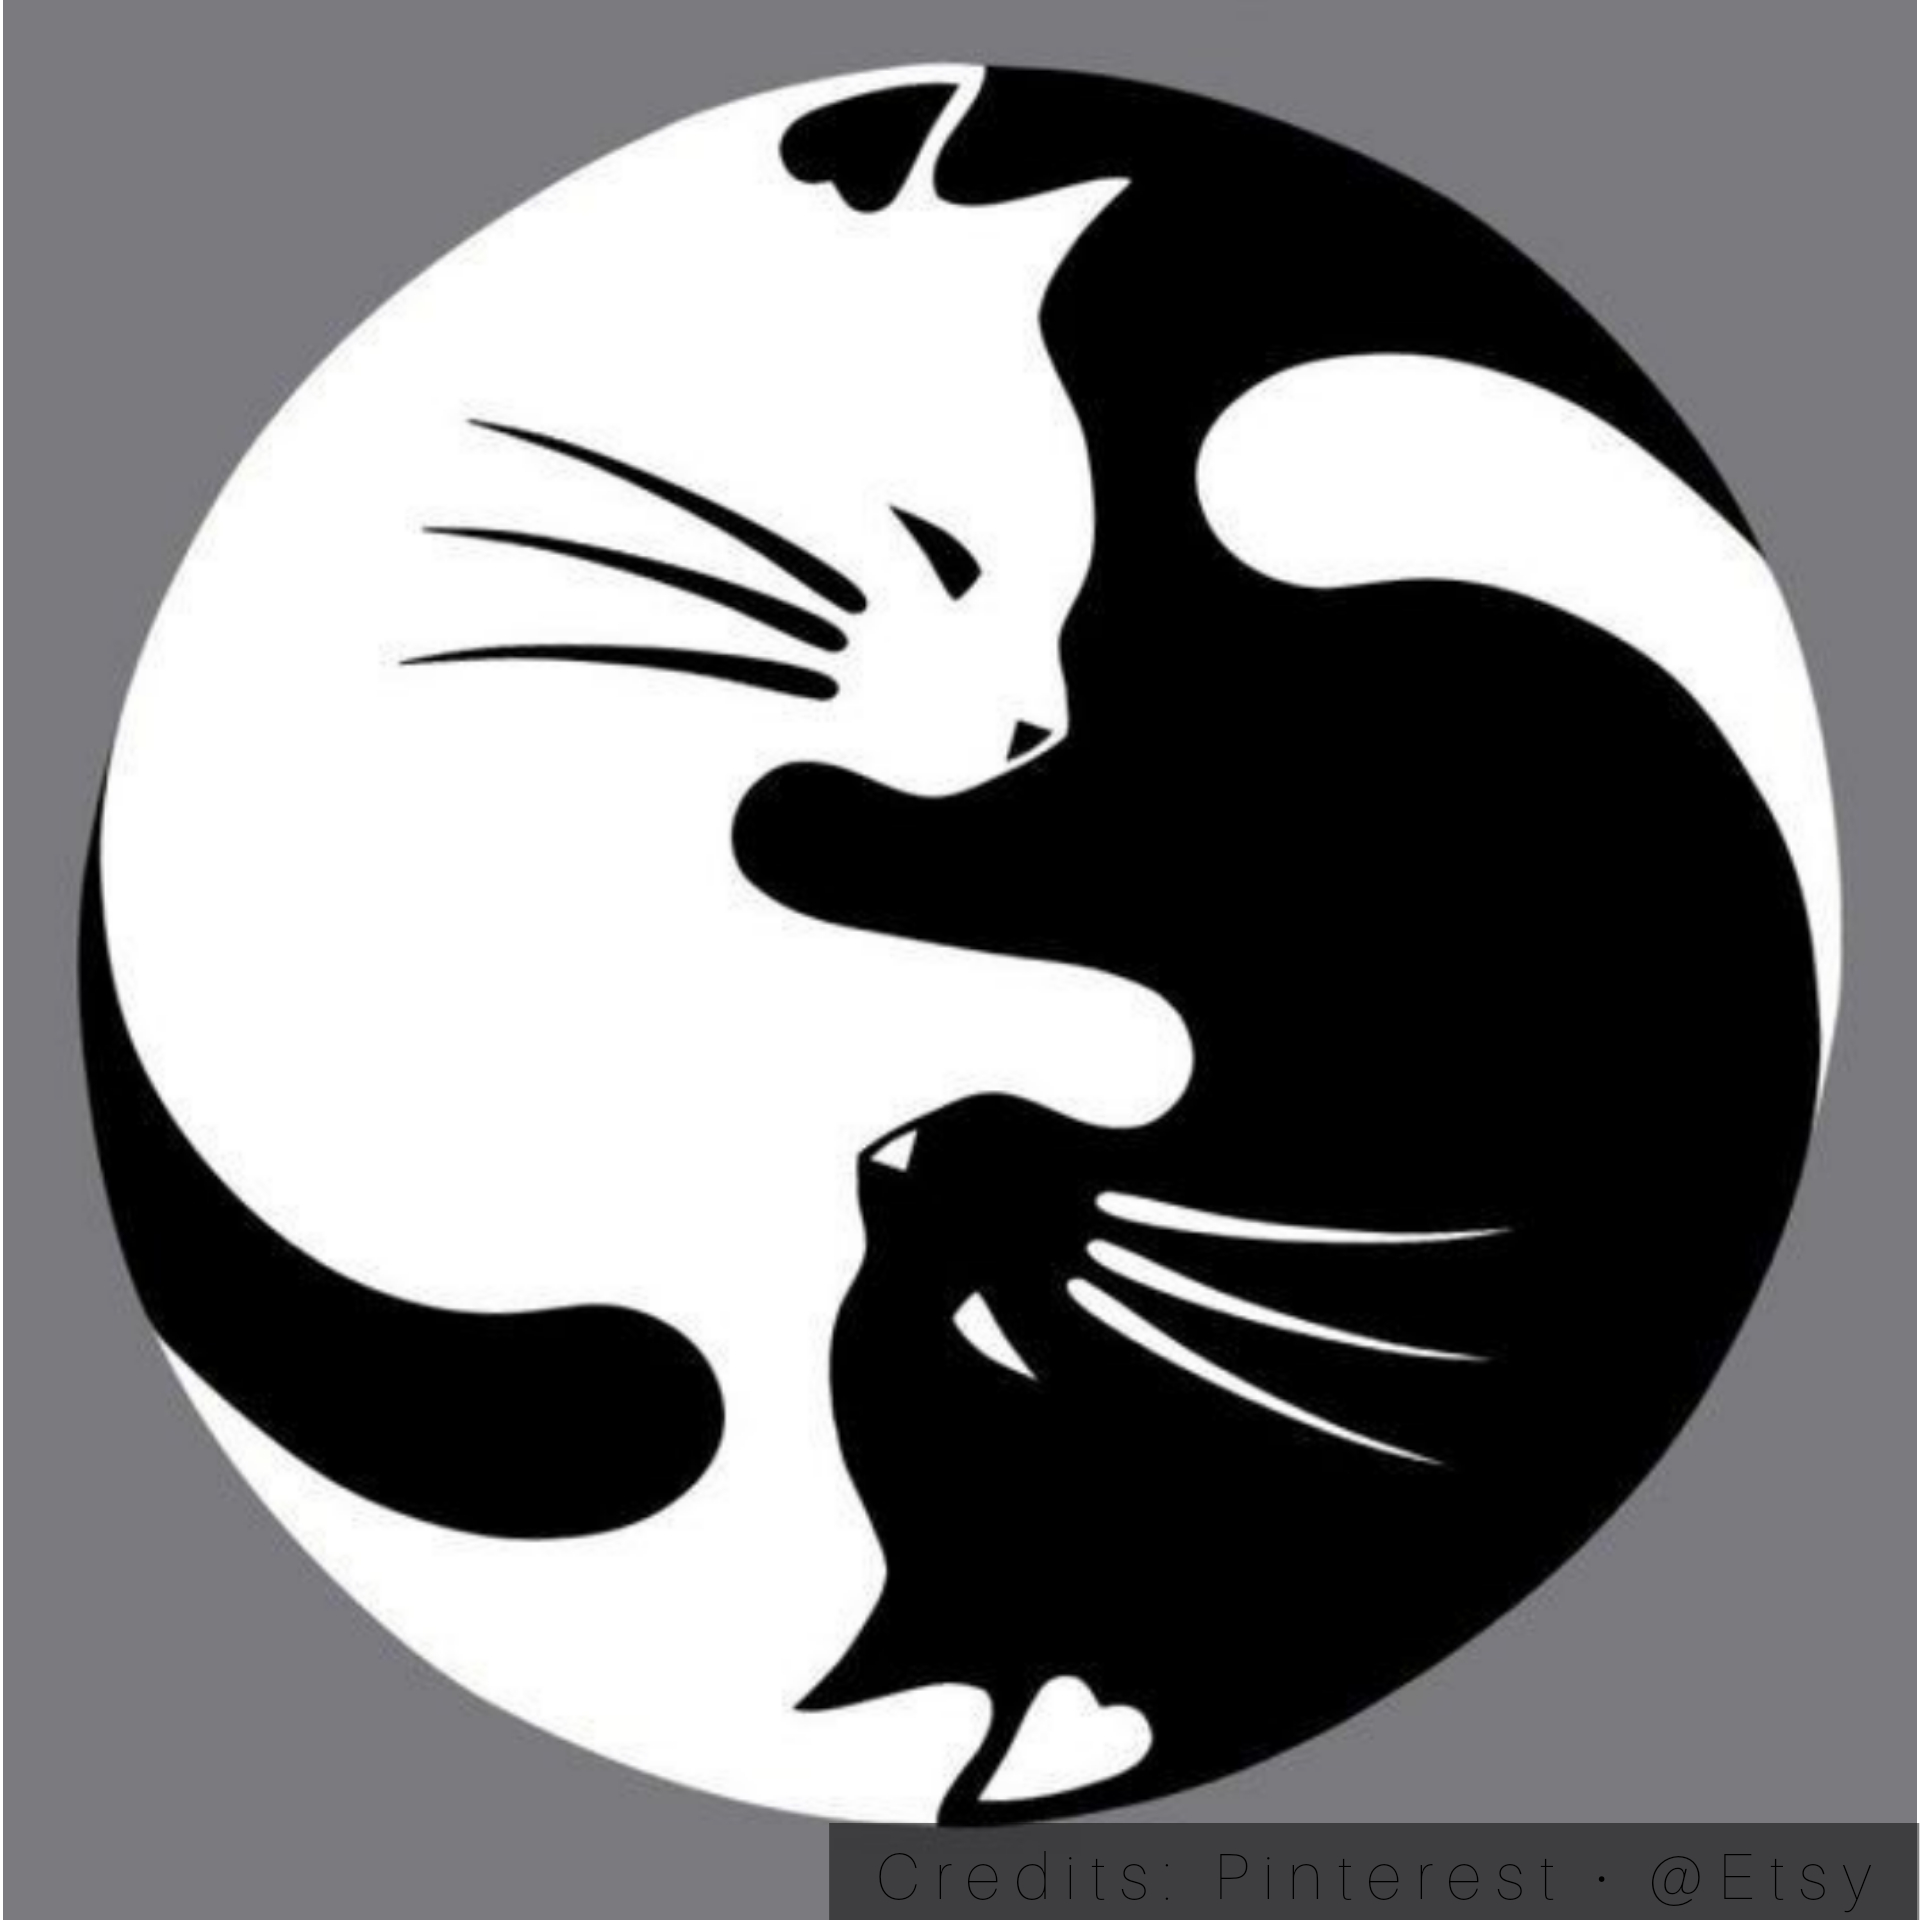 Sample Images for Yin and Yang Art Challenge